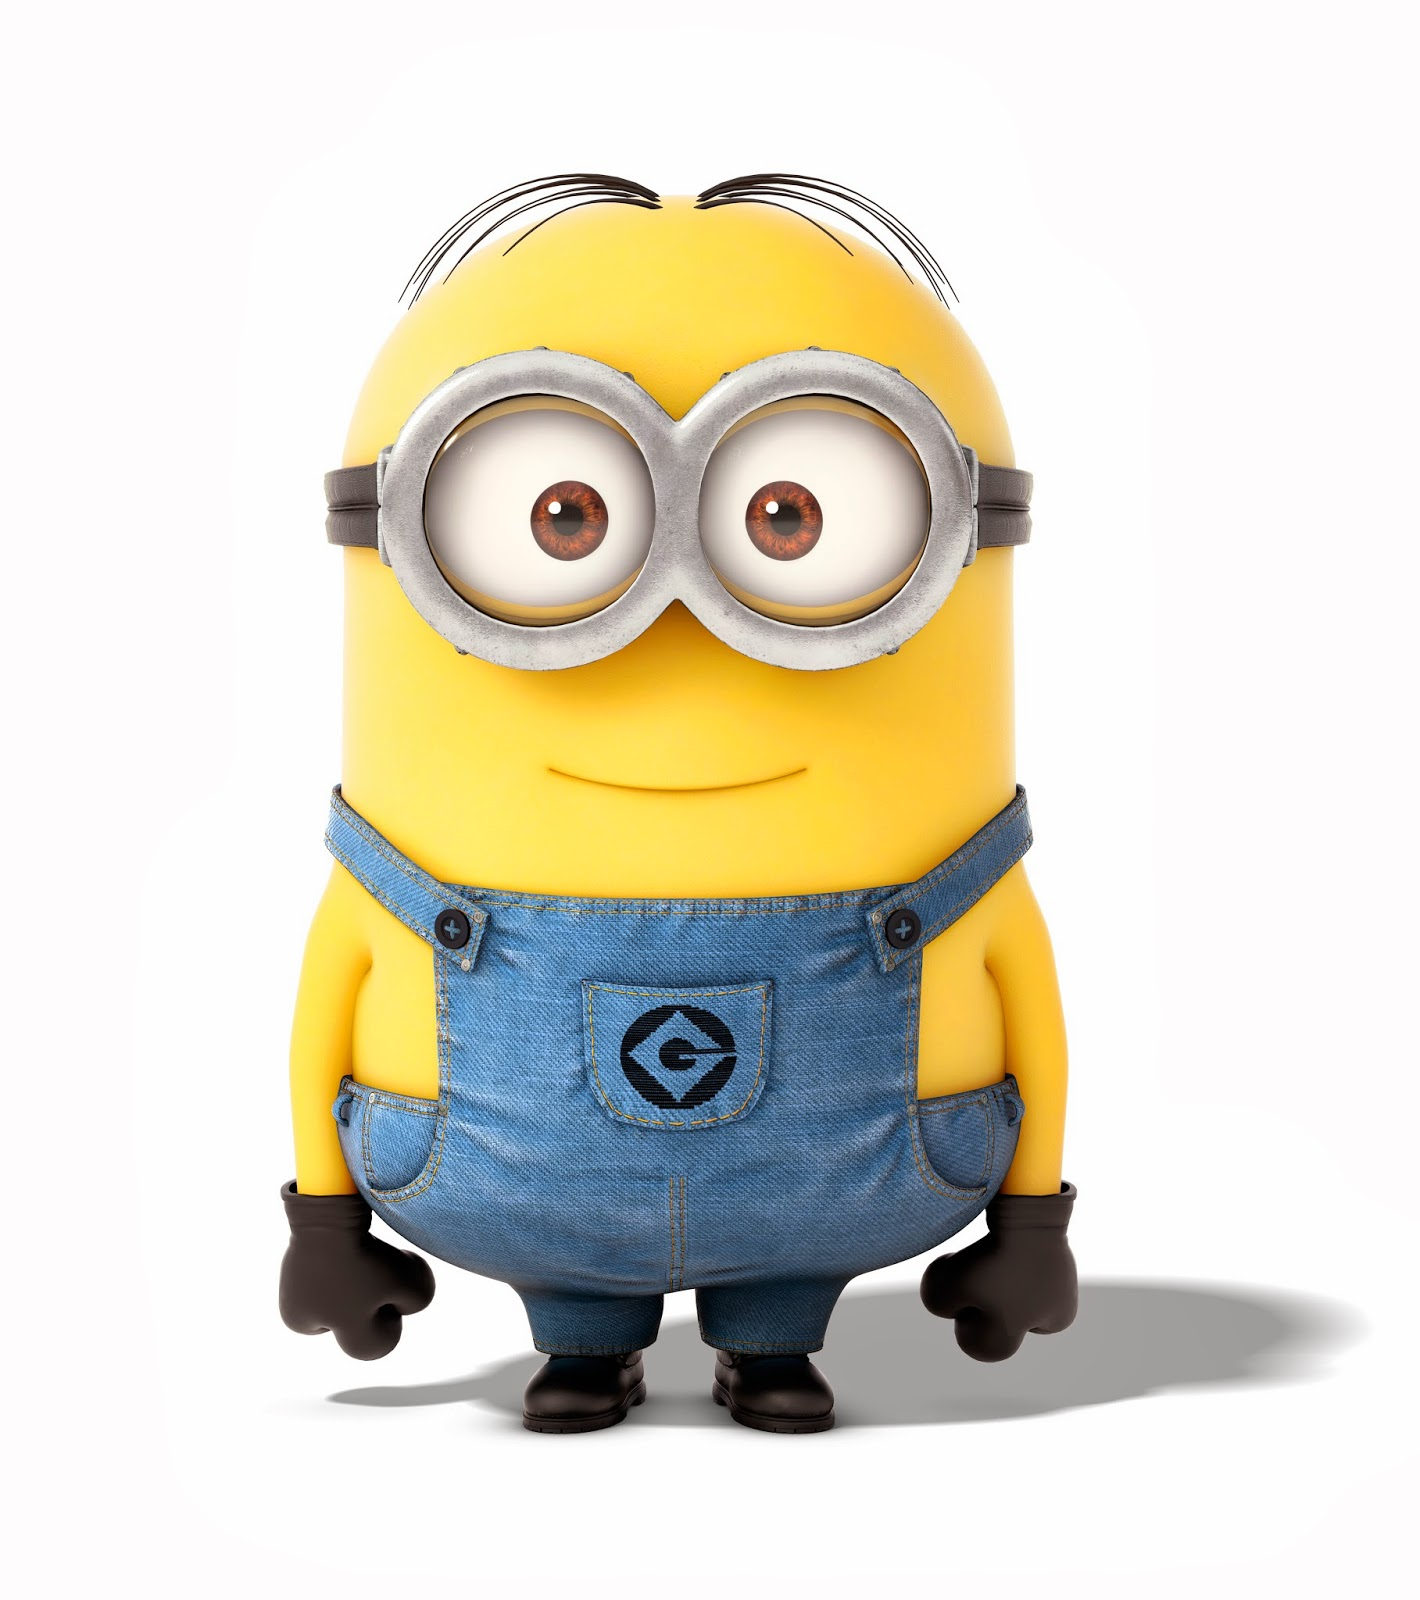 Como Hacer Un Minion En Cinema 4d YouTube